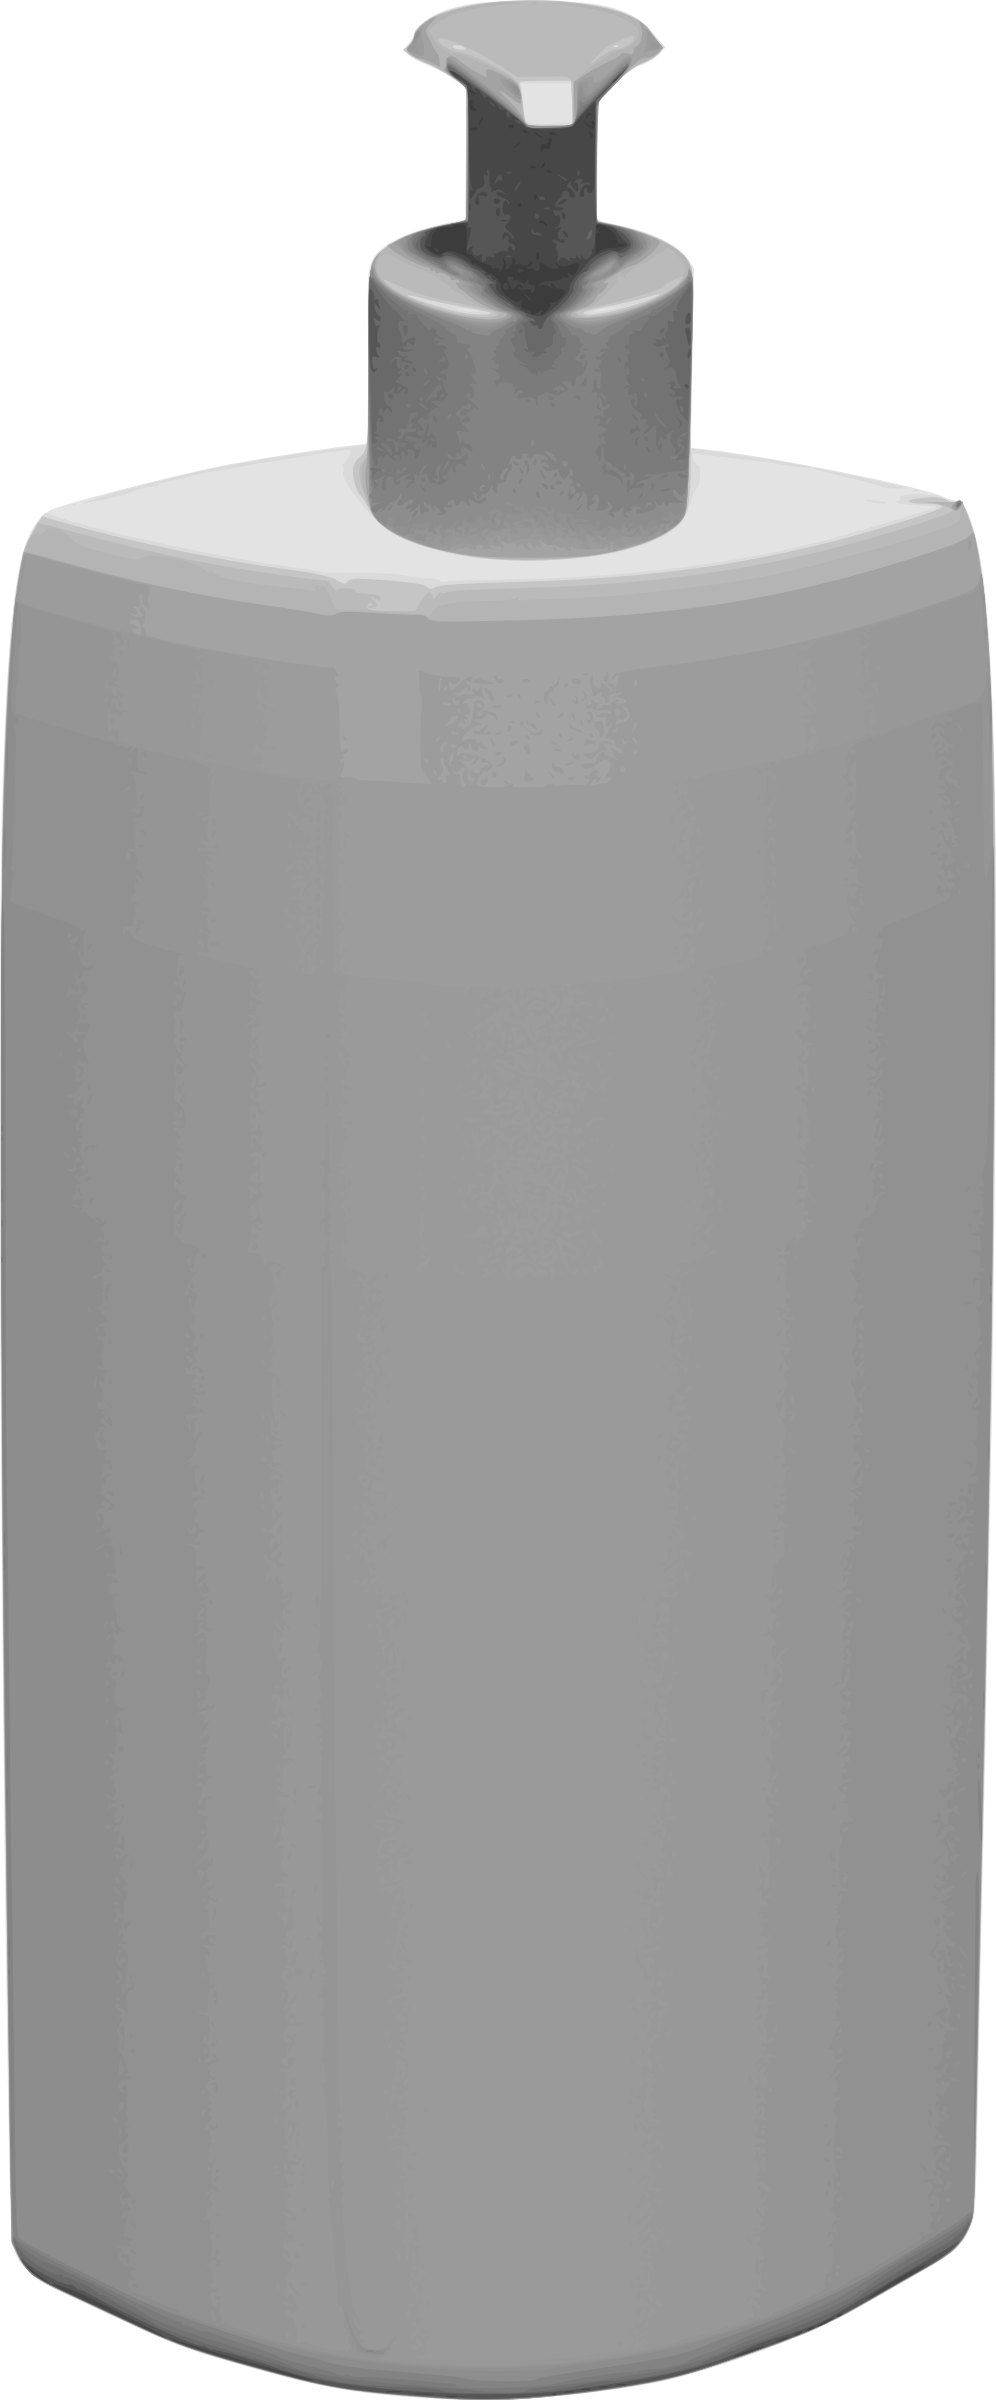 Liquid soap dispenser by Tobbi